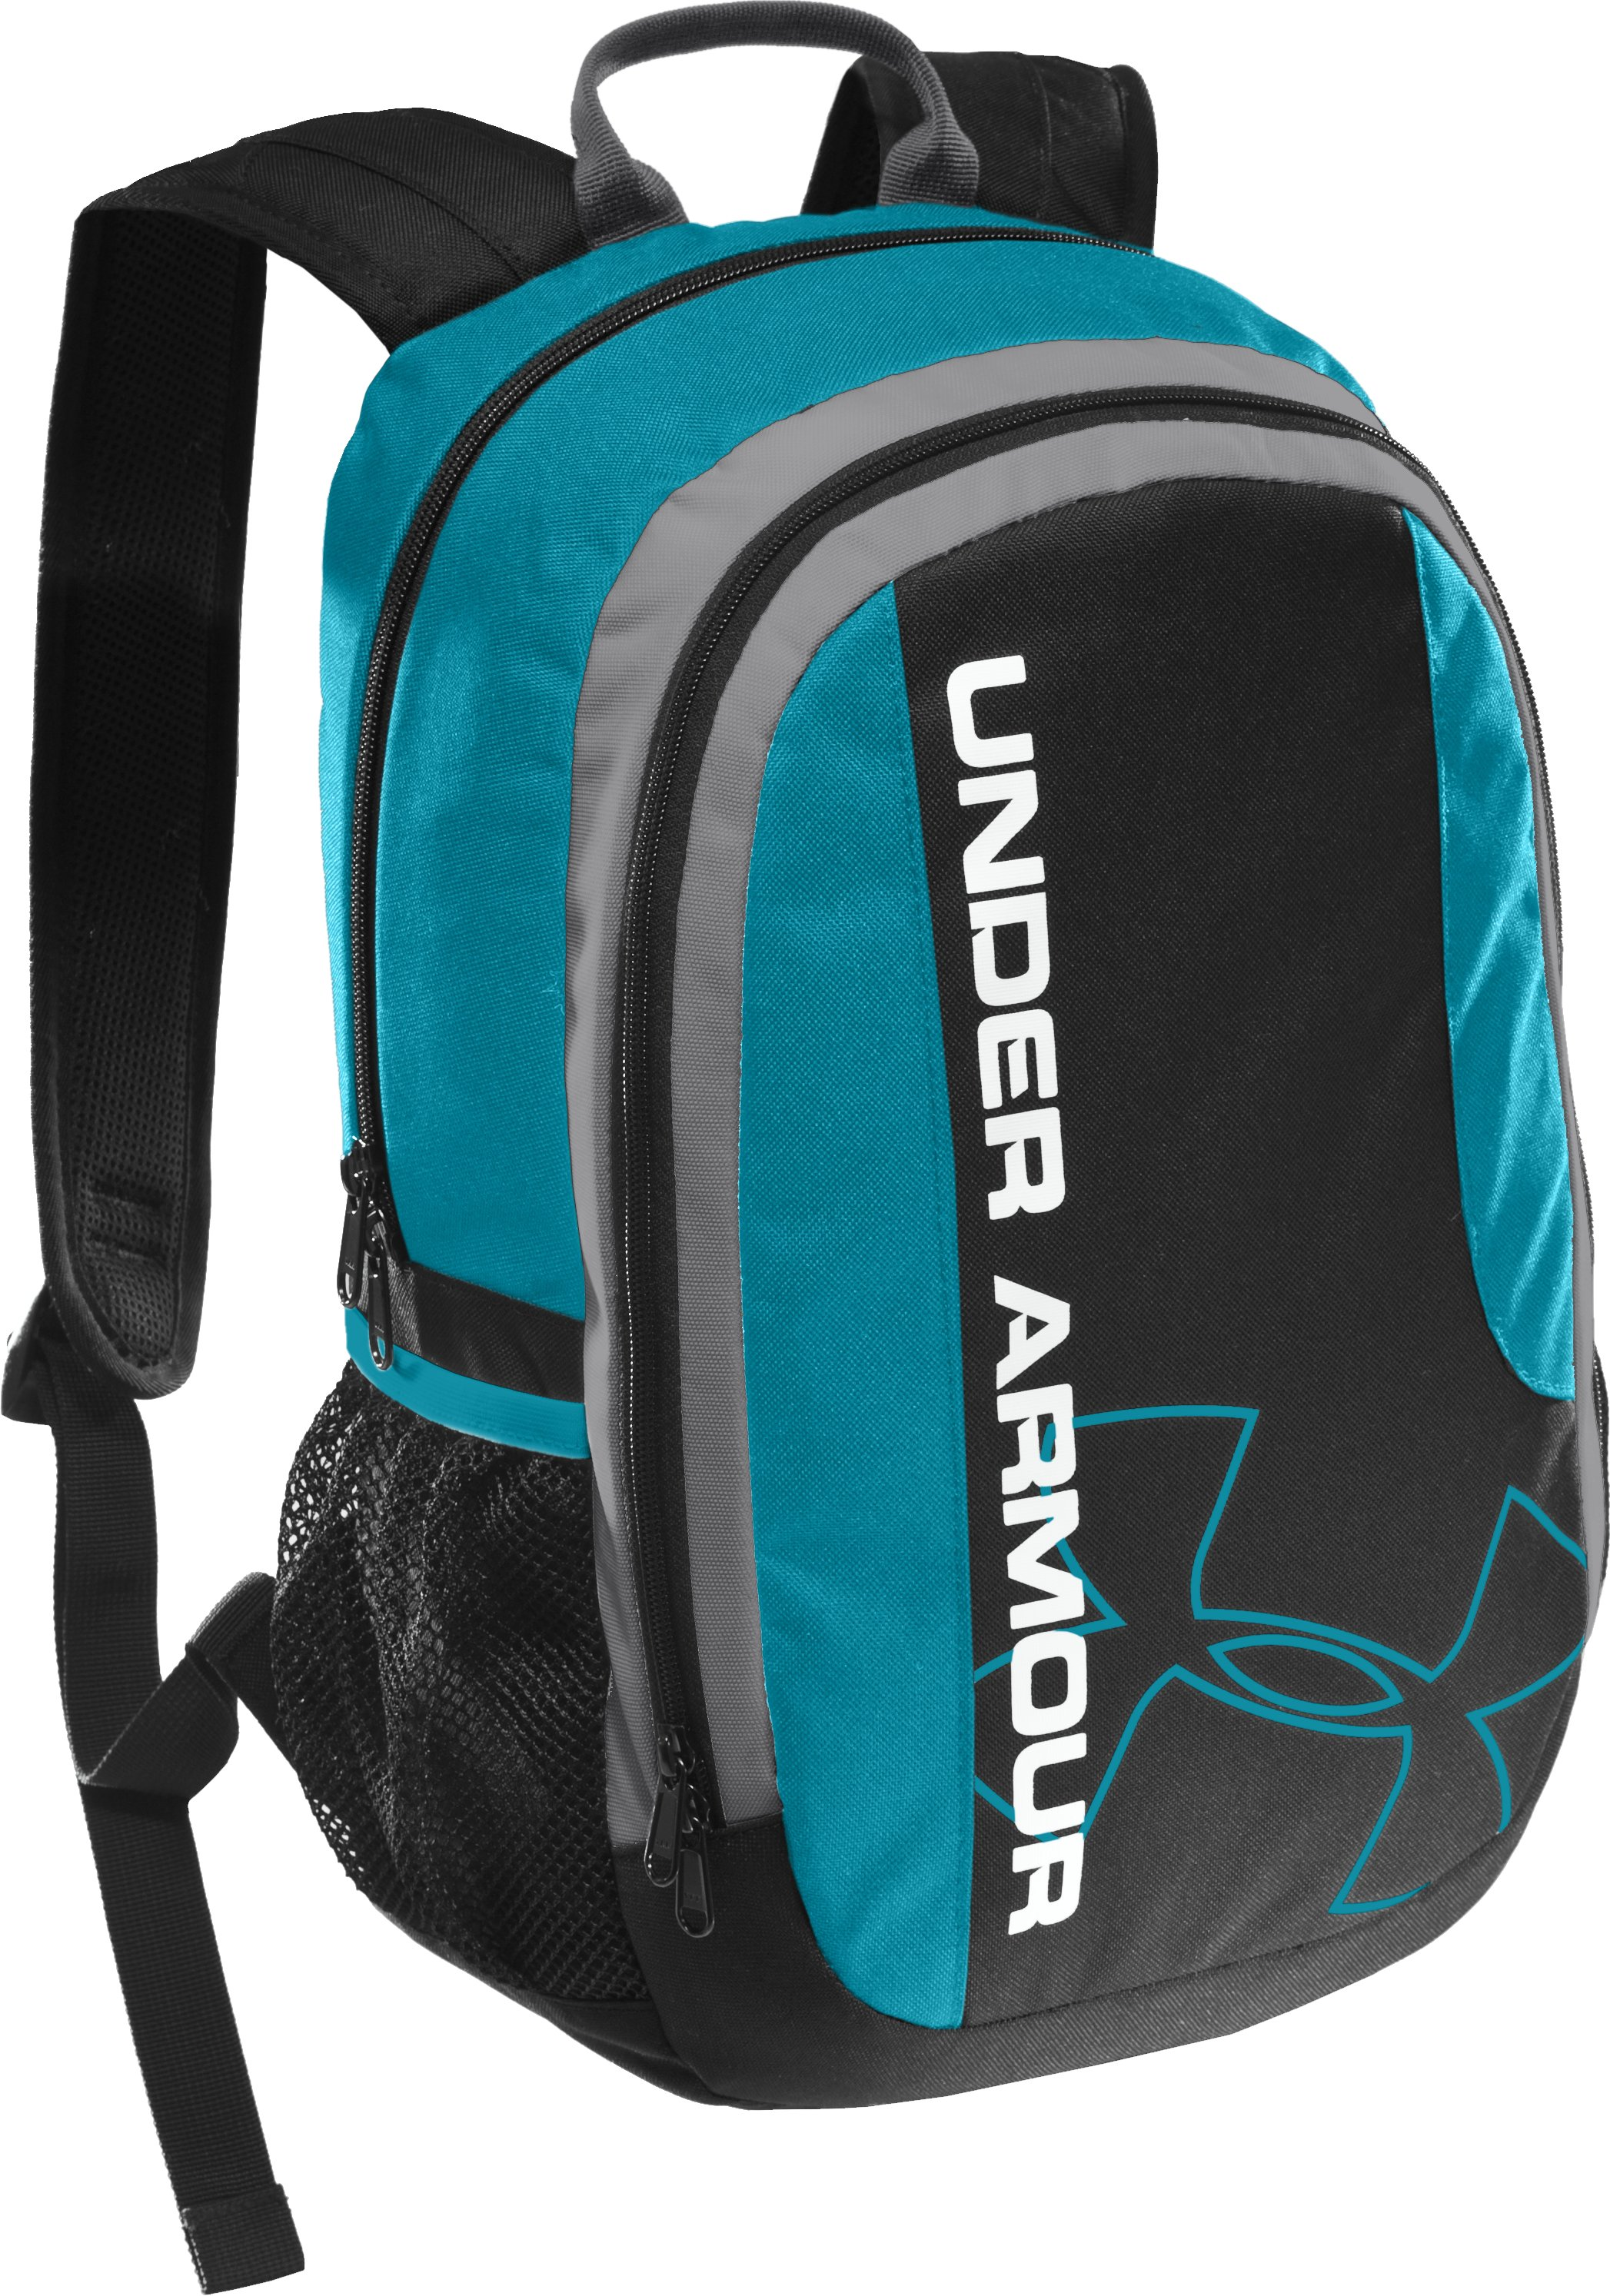 Dauntless Backpack, Black